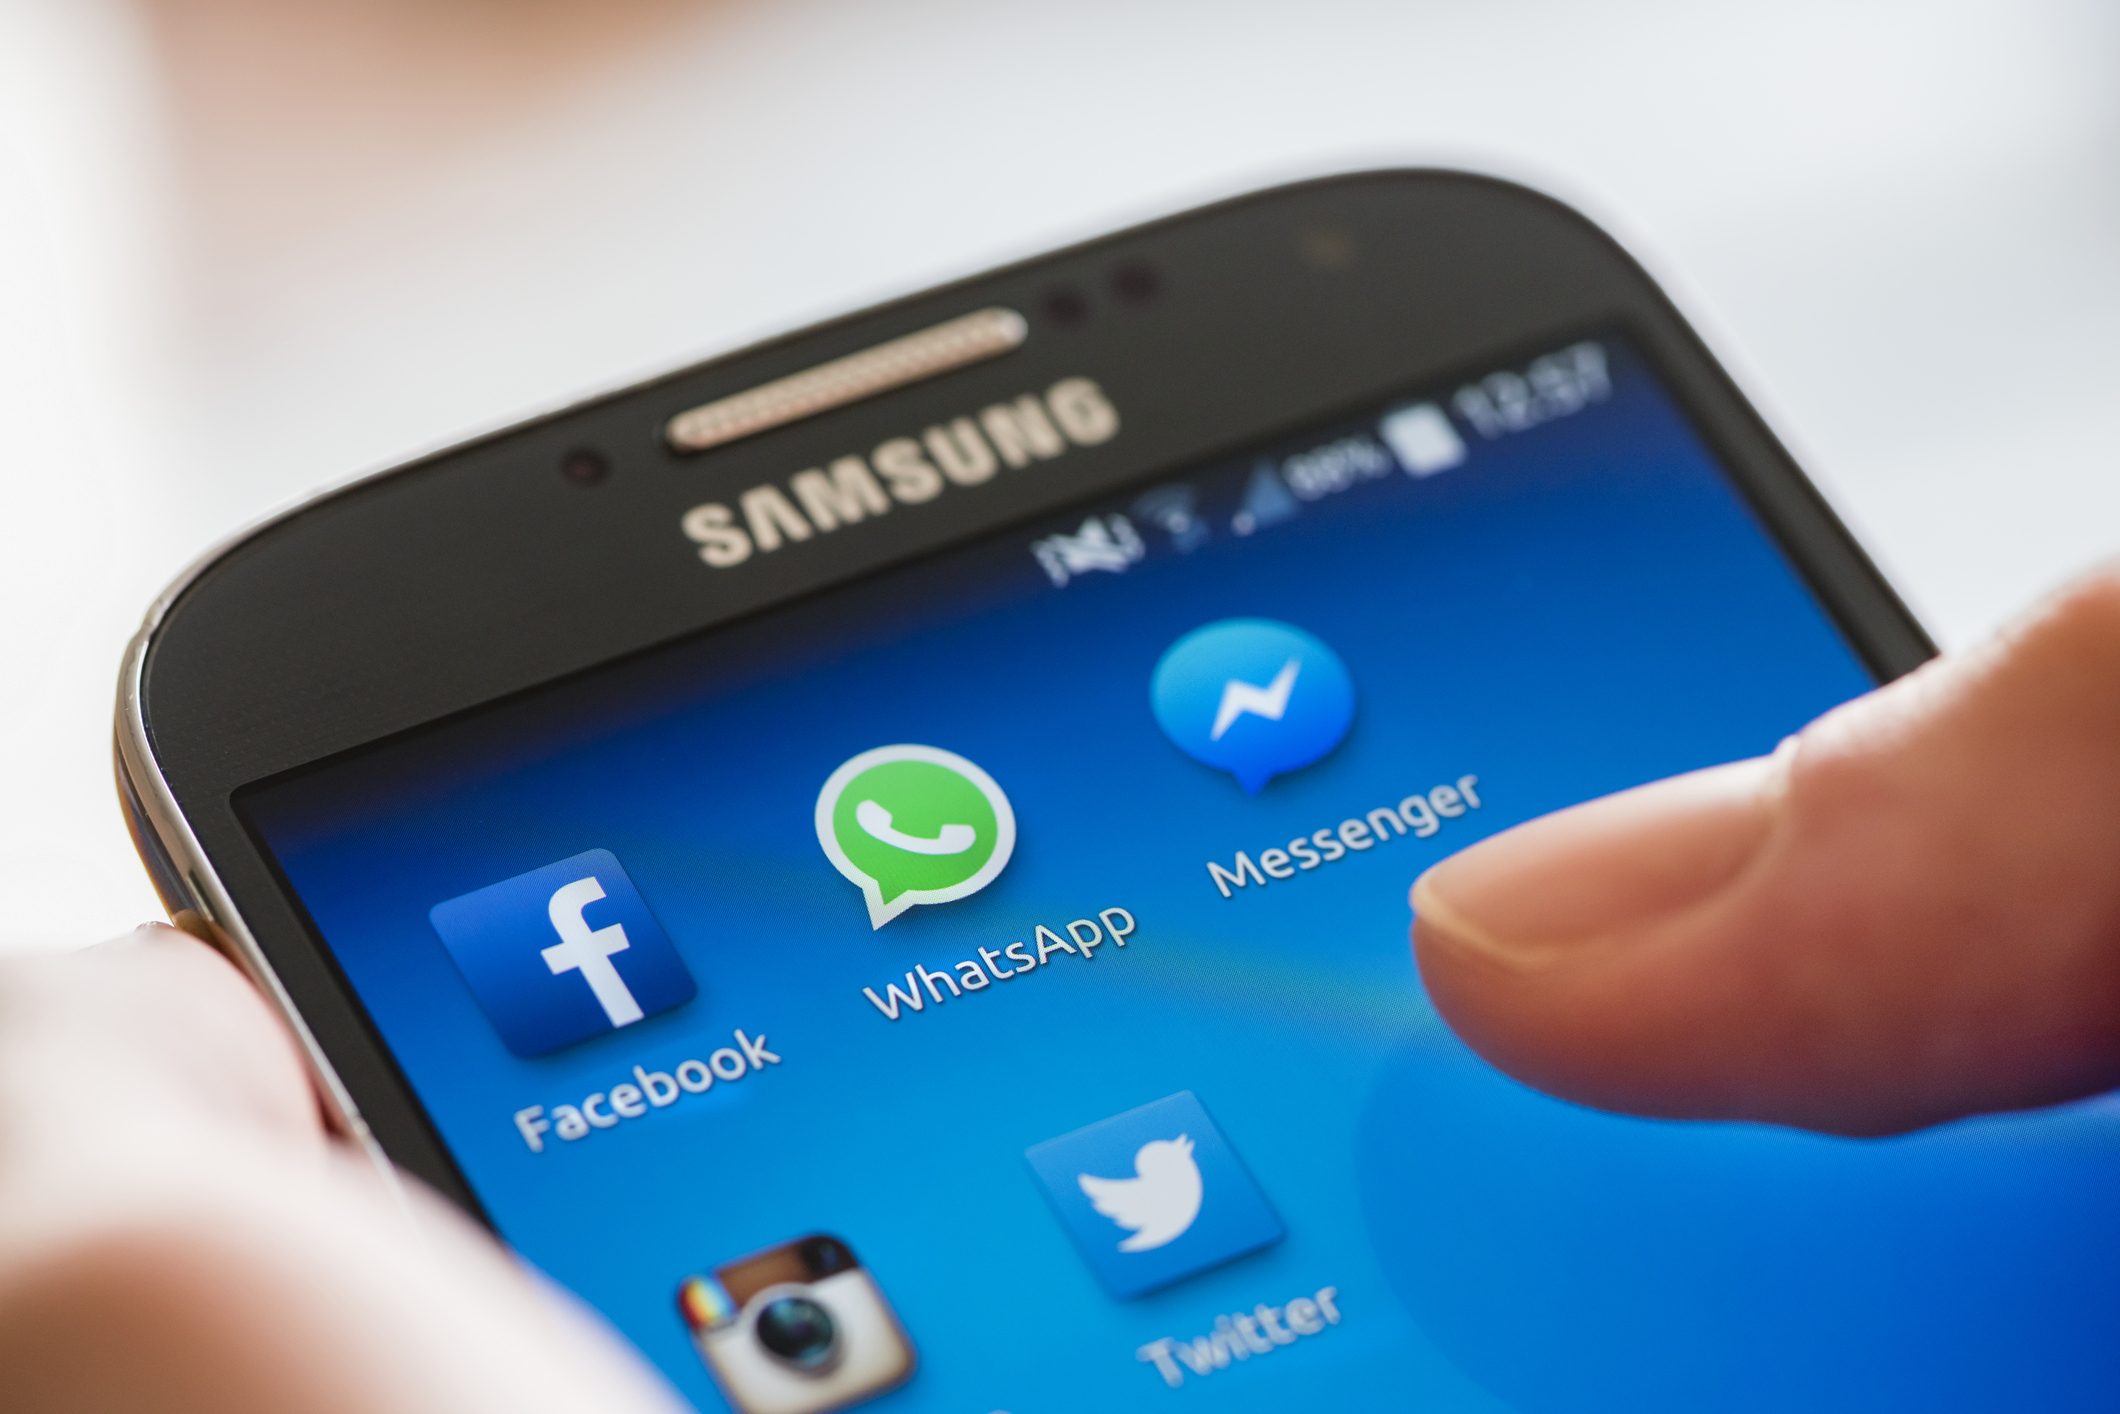 WhatsApp will not share data with Facebook